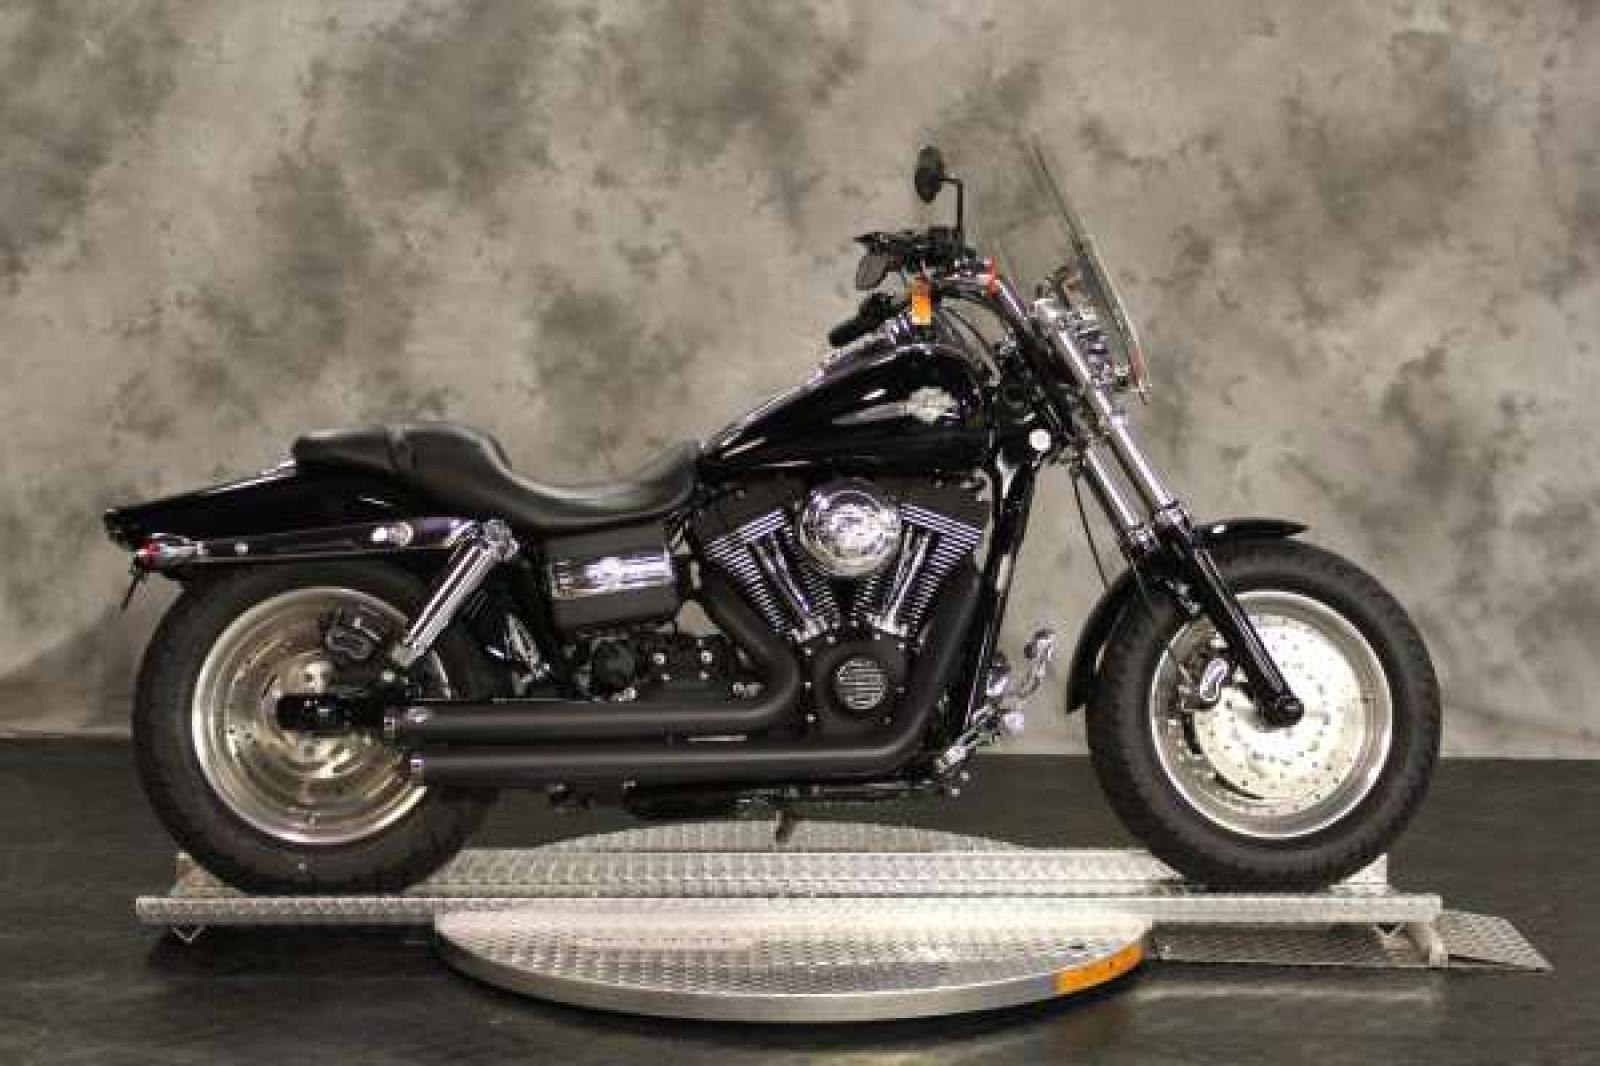 2009 harley davidson fxdf dyna fat bob moto zombdrive com. Black Bedroom Furniture Sets. Home Design Ideas